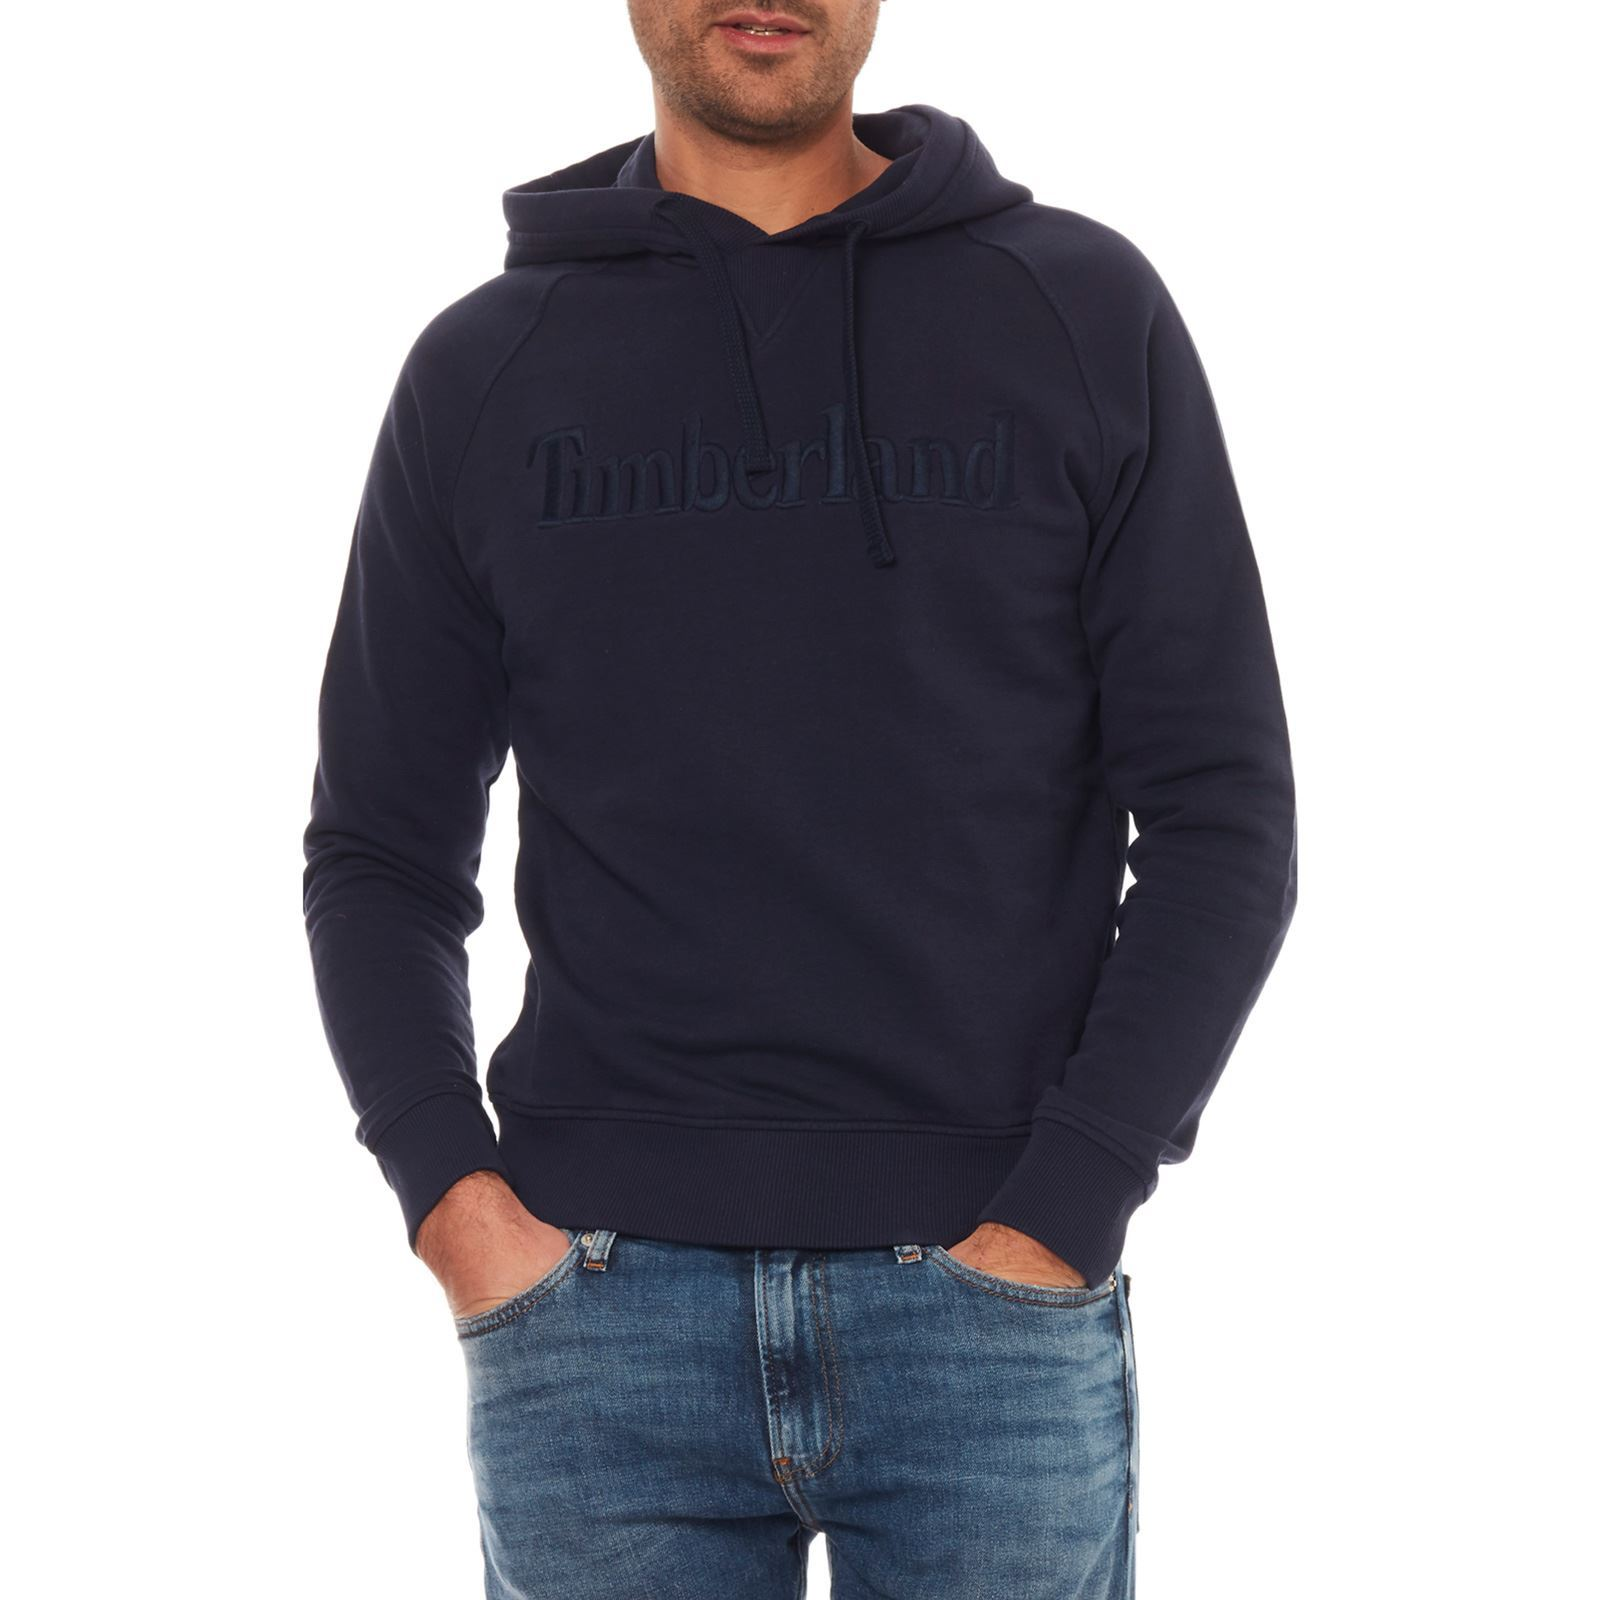 Marine Homme V Timberland Sweat a CapucheBleu 0OP8nwkX